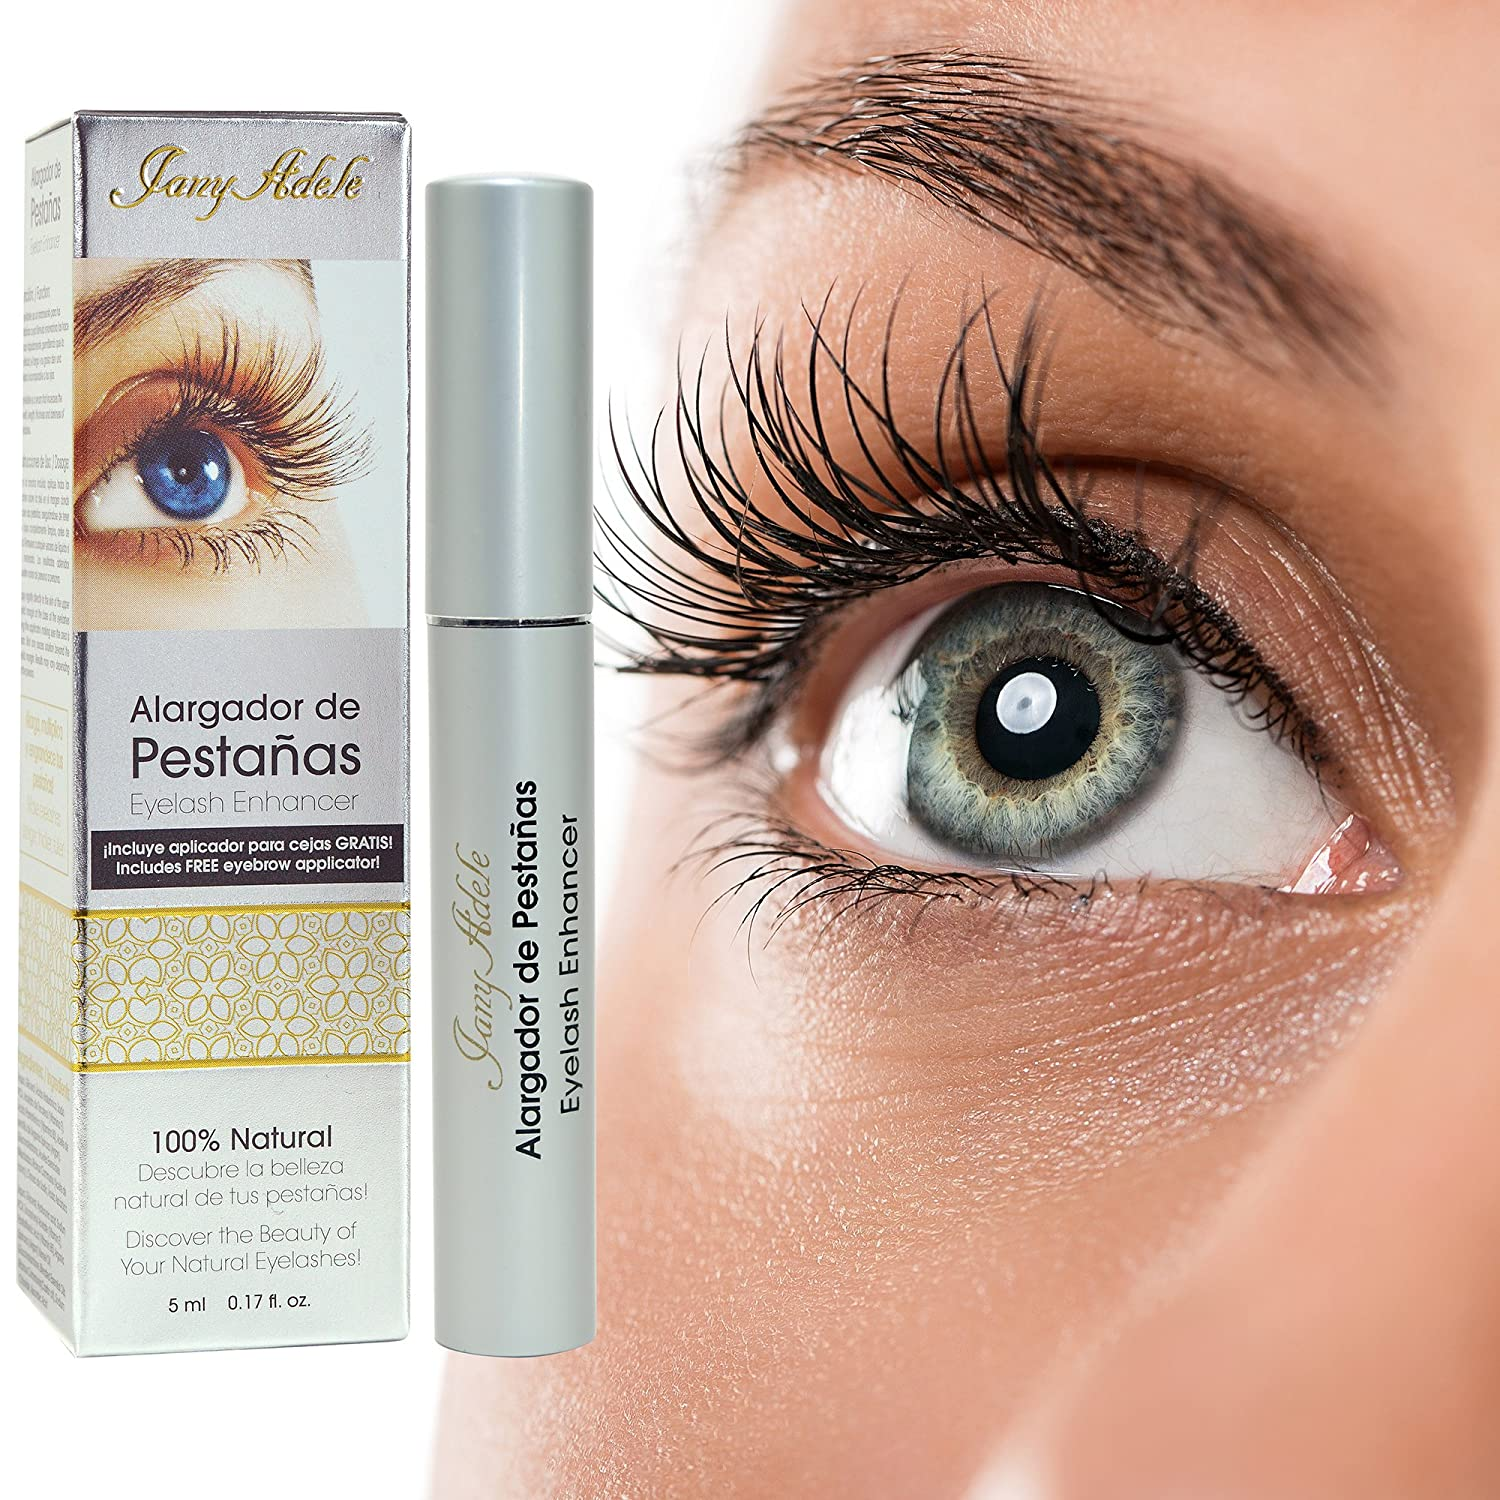 Amazon.com: JanyAdele 3D Eyelash Growth Enhancer with FREE Eyebrow Brush Applicator! - MORE Serum Oil - 100% Natural Vitamins - No Eye Irritation - Say ...